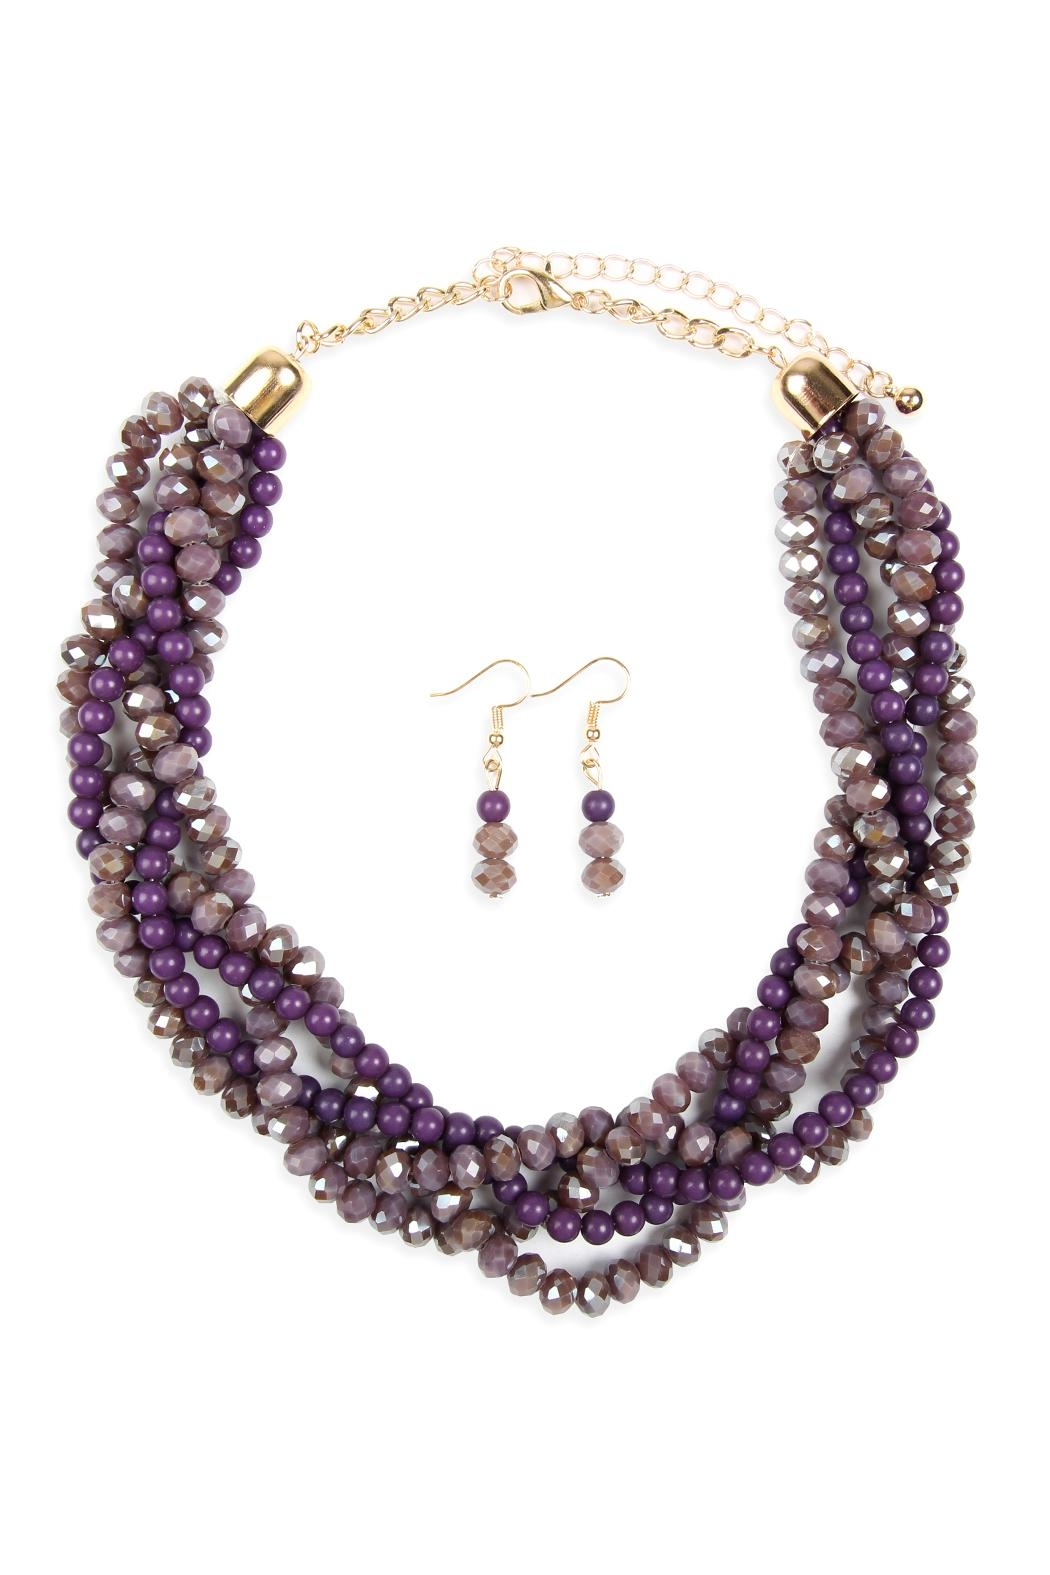 Riah Fashion 4-Lines Braided-Glass-Beads Necklace-And-Earring-Set - Main Image